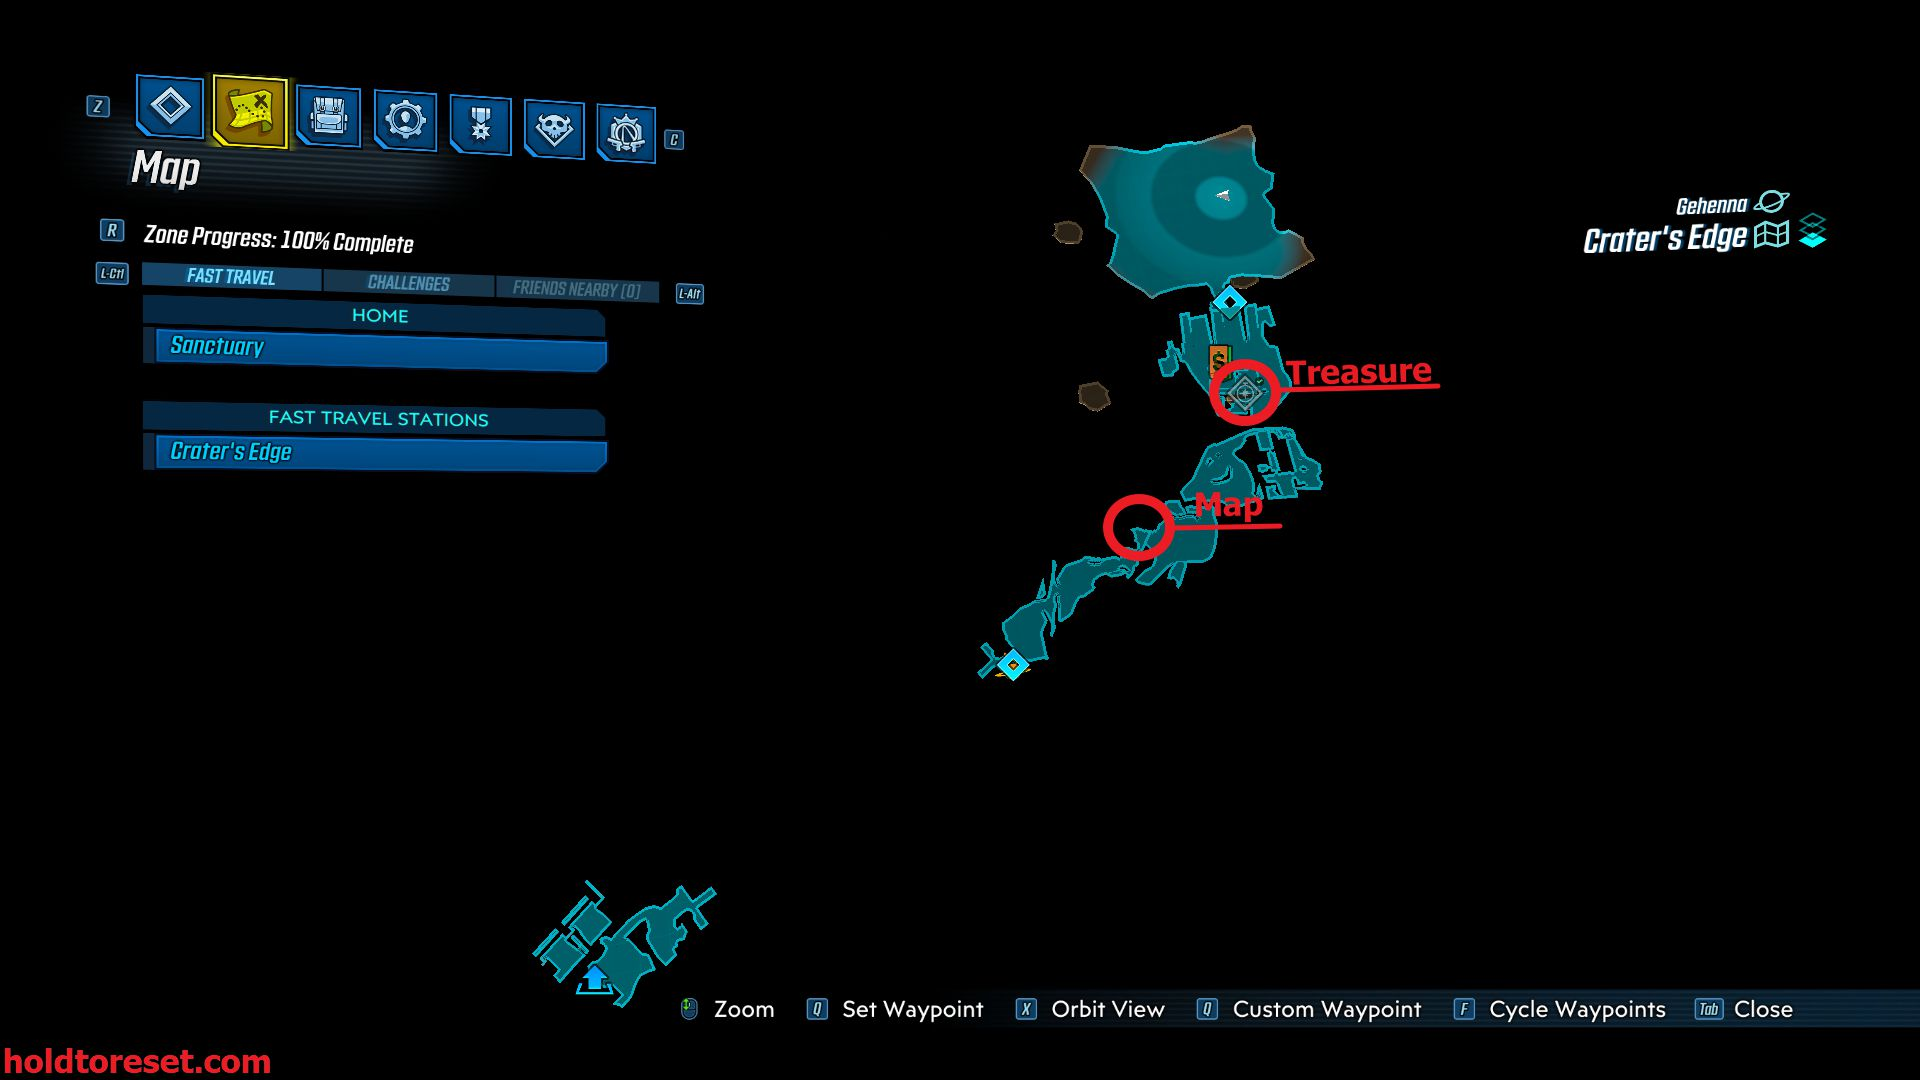 Image showing a map of the locations of the Good Prospects map and treasure locations for the Crater's Edge zone of Borderlands 3.